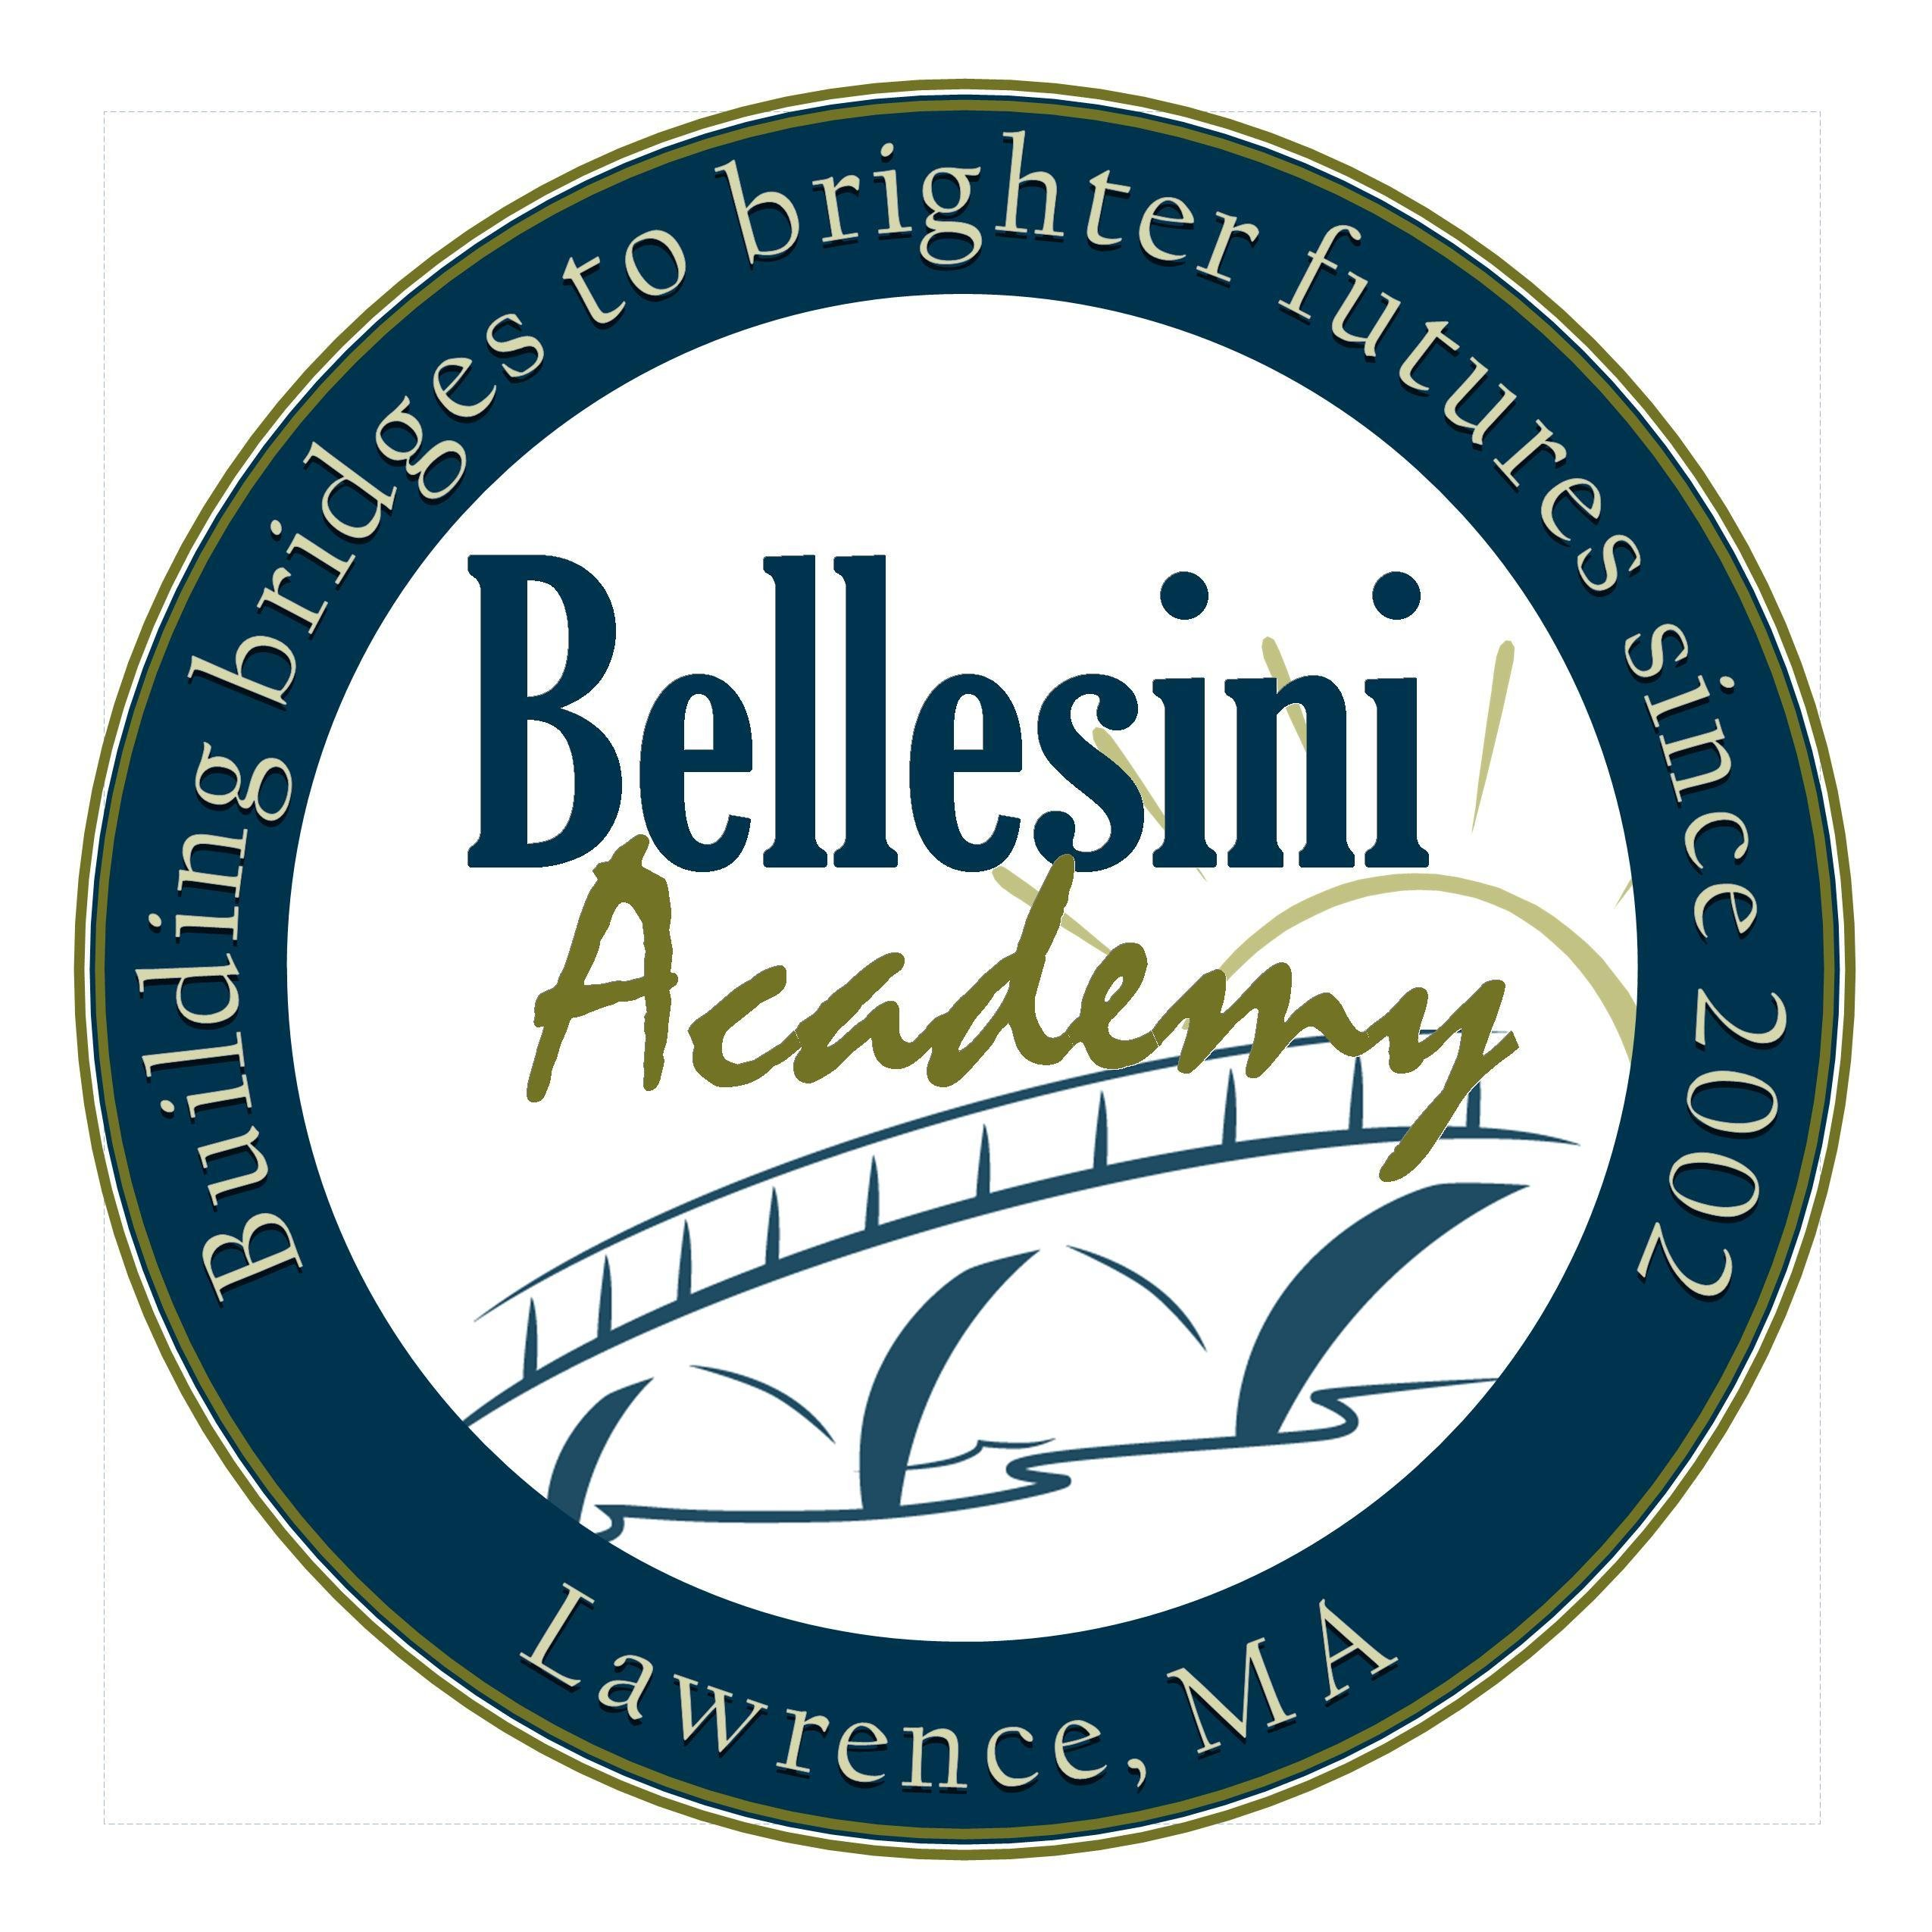 Bellesini Academy